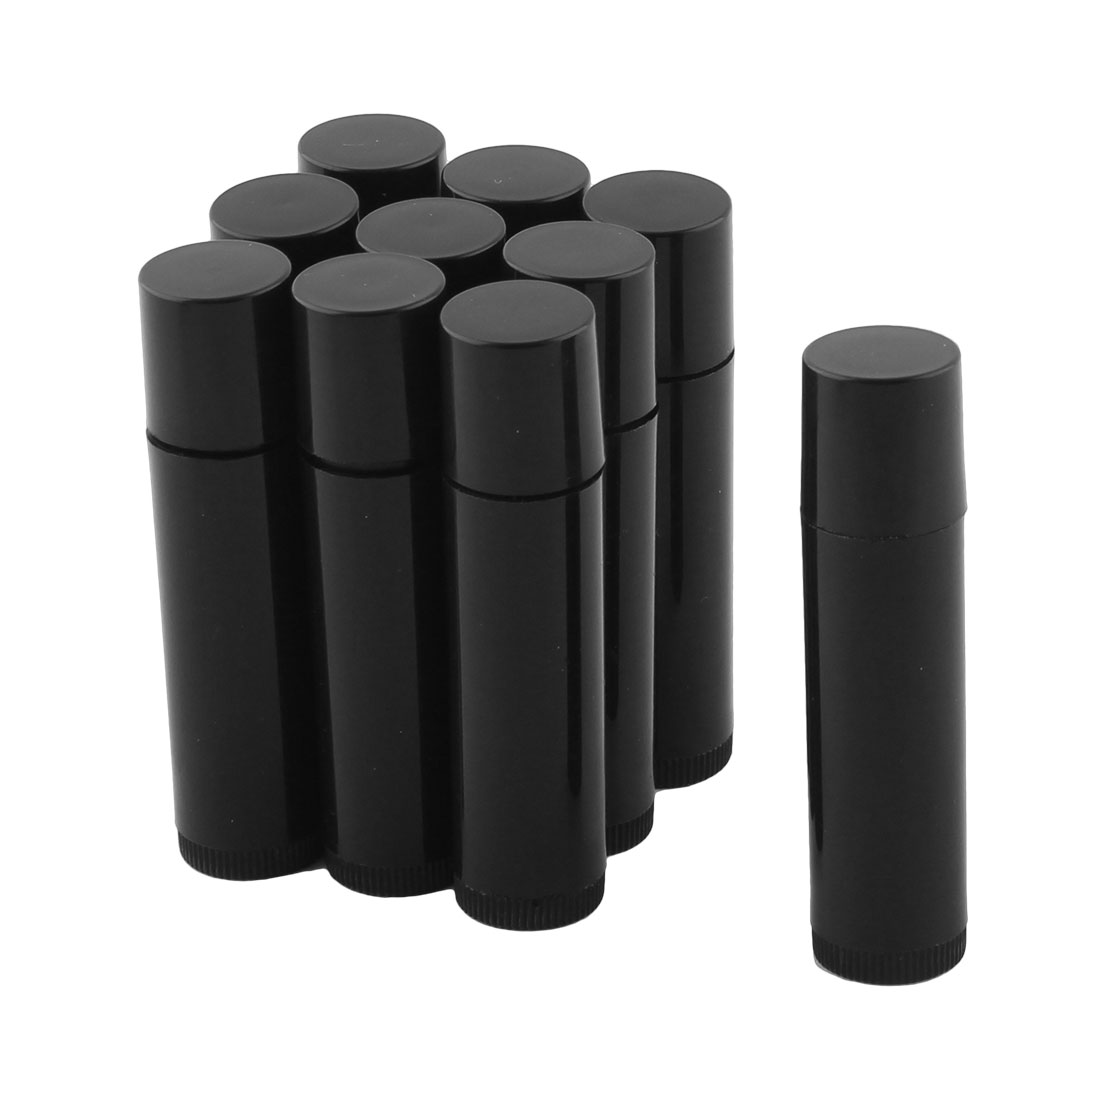 Lady Plastic Empty Lip Balm Tube Lipstick Chapstick Container Cosmetic Holder Black 10 Pcs